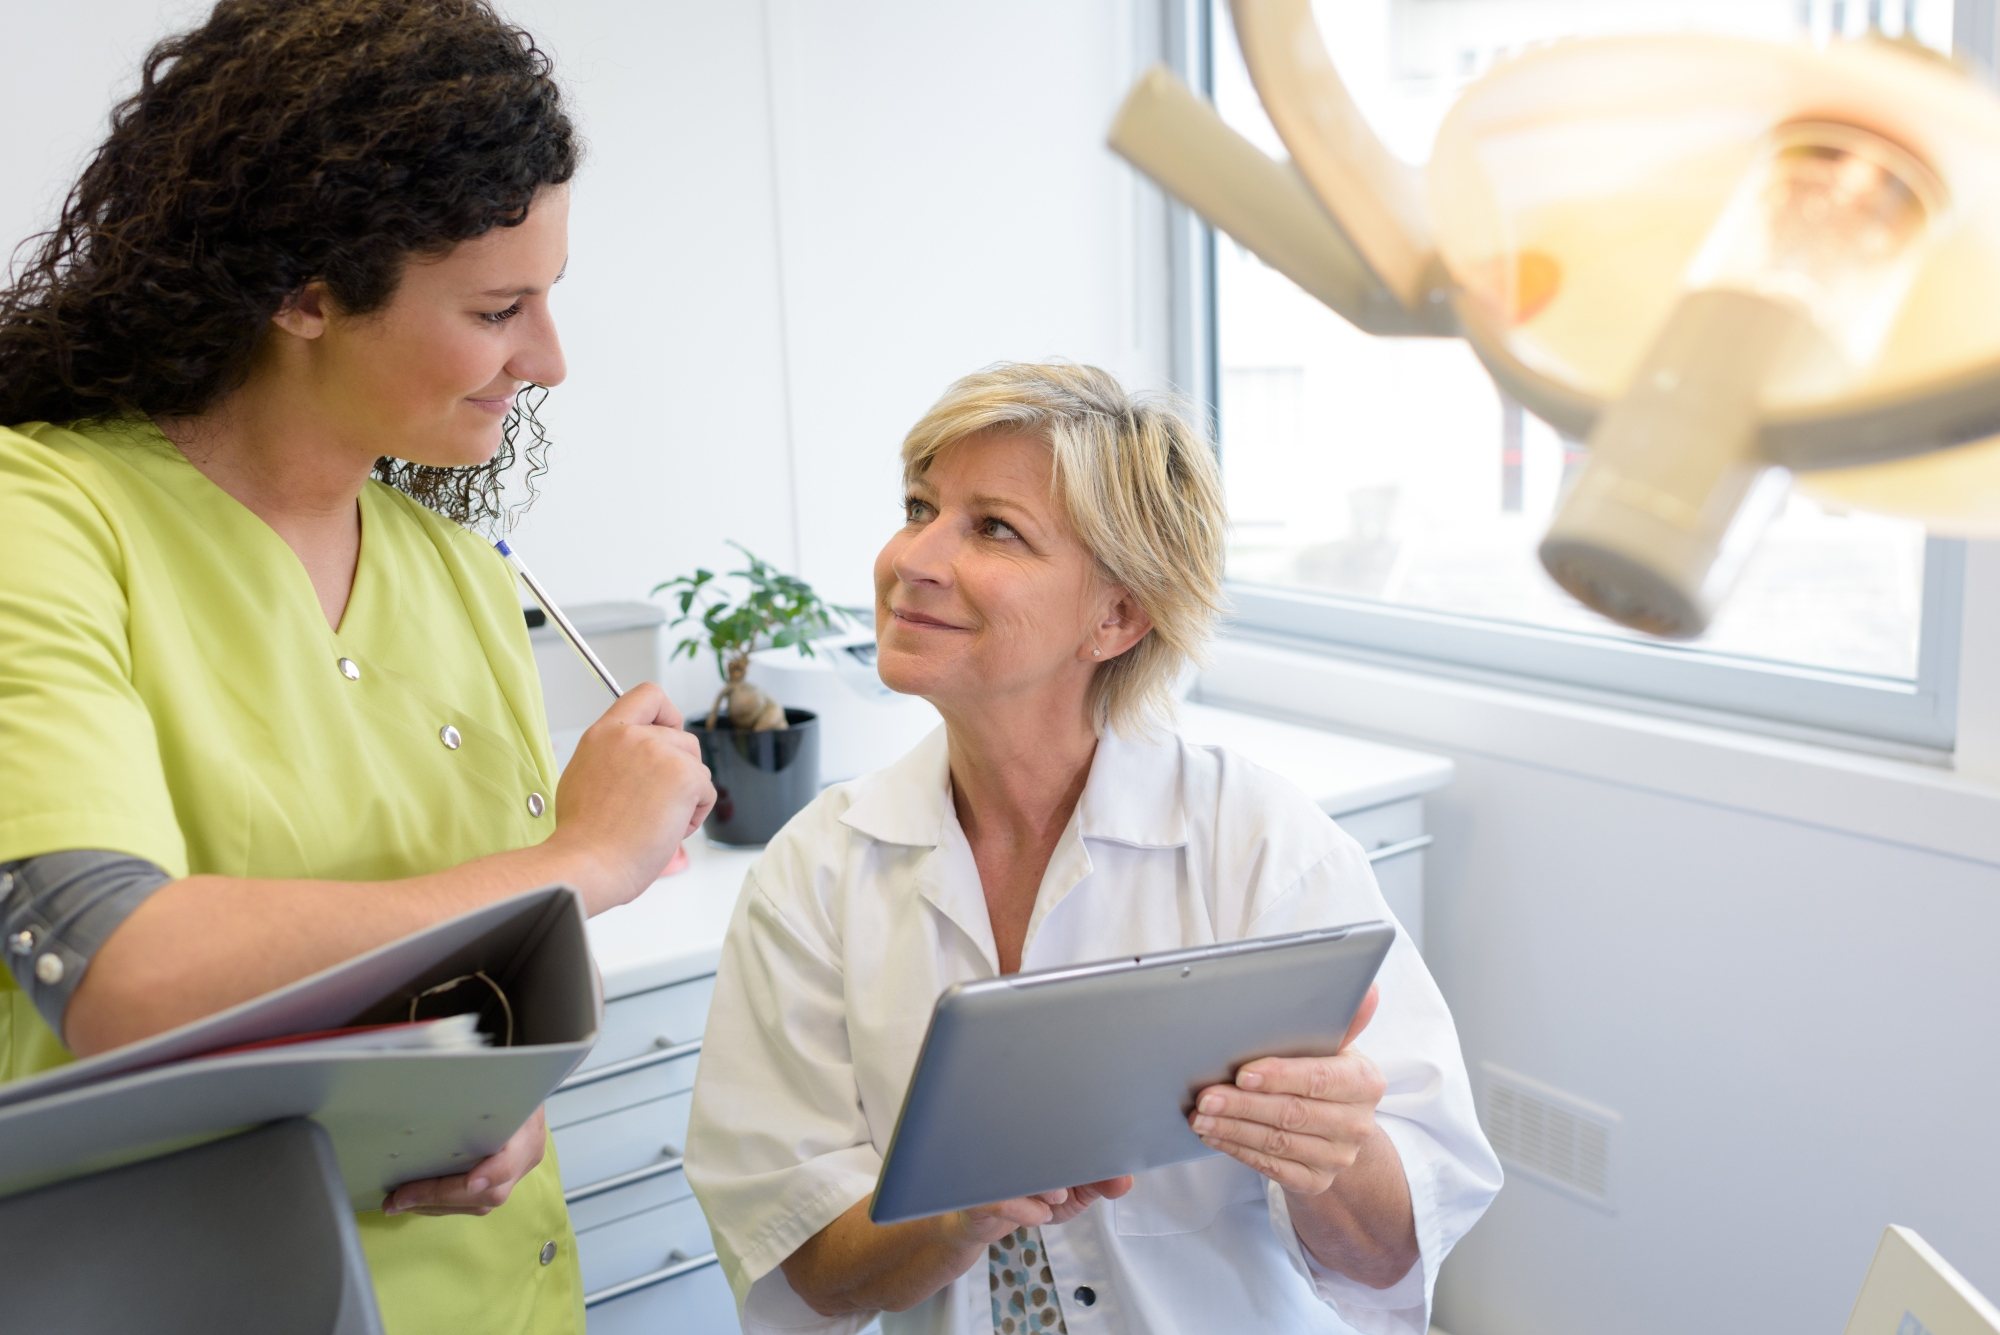 Tips on Providing Constructive Feedback to Dental Staff